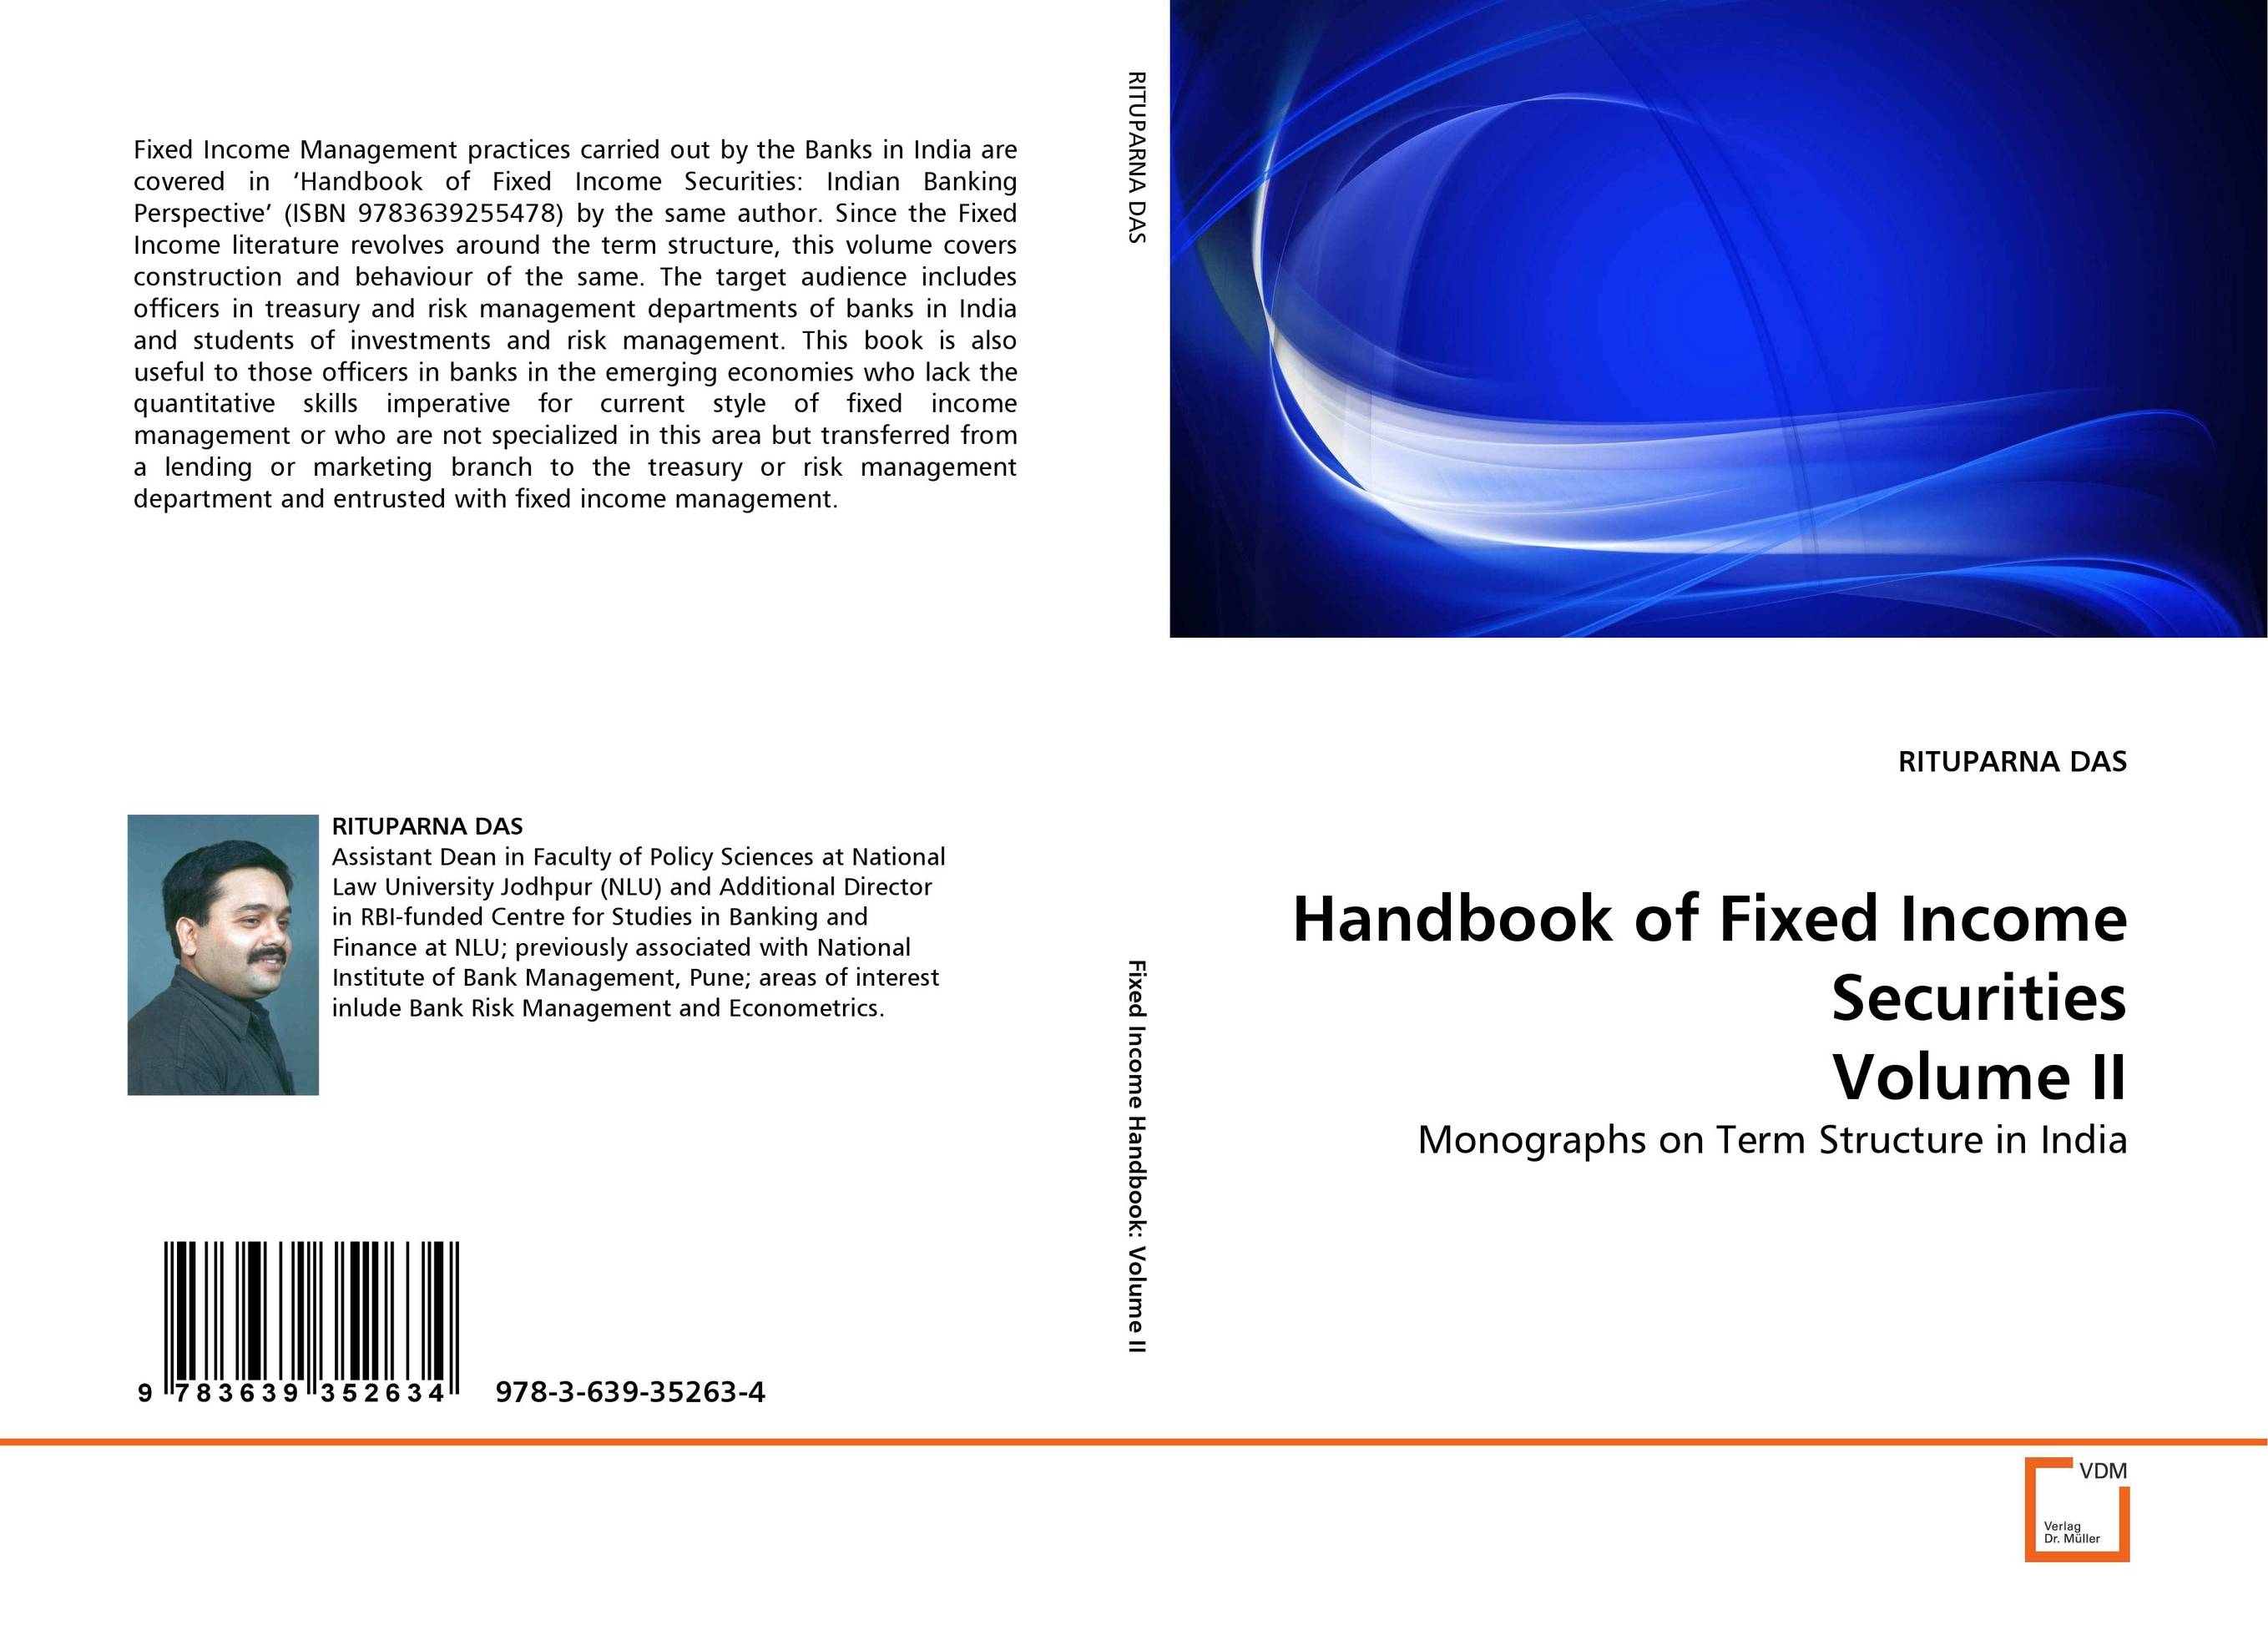 Handbook of Fixed Income Securities Volume II moorad choudhry fixed income securities and derivatives handbook